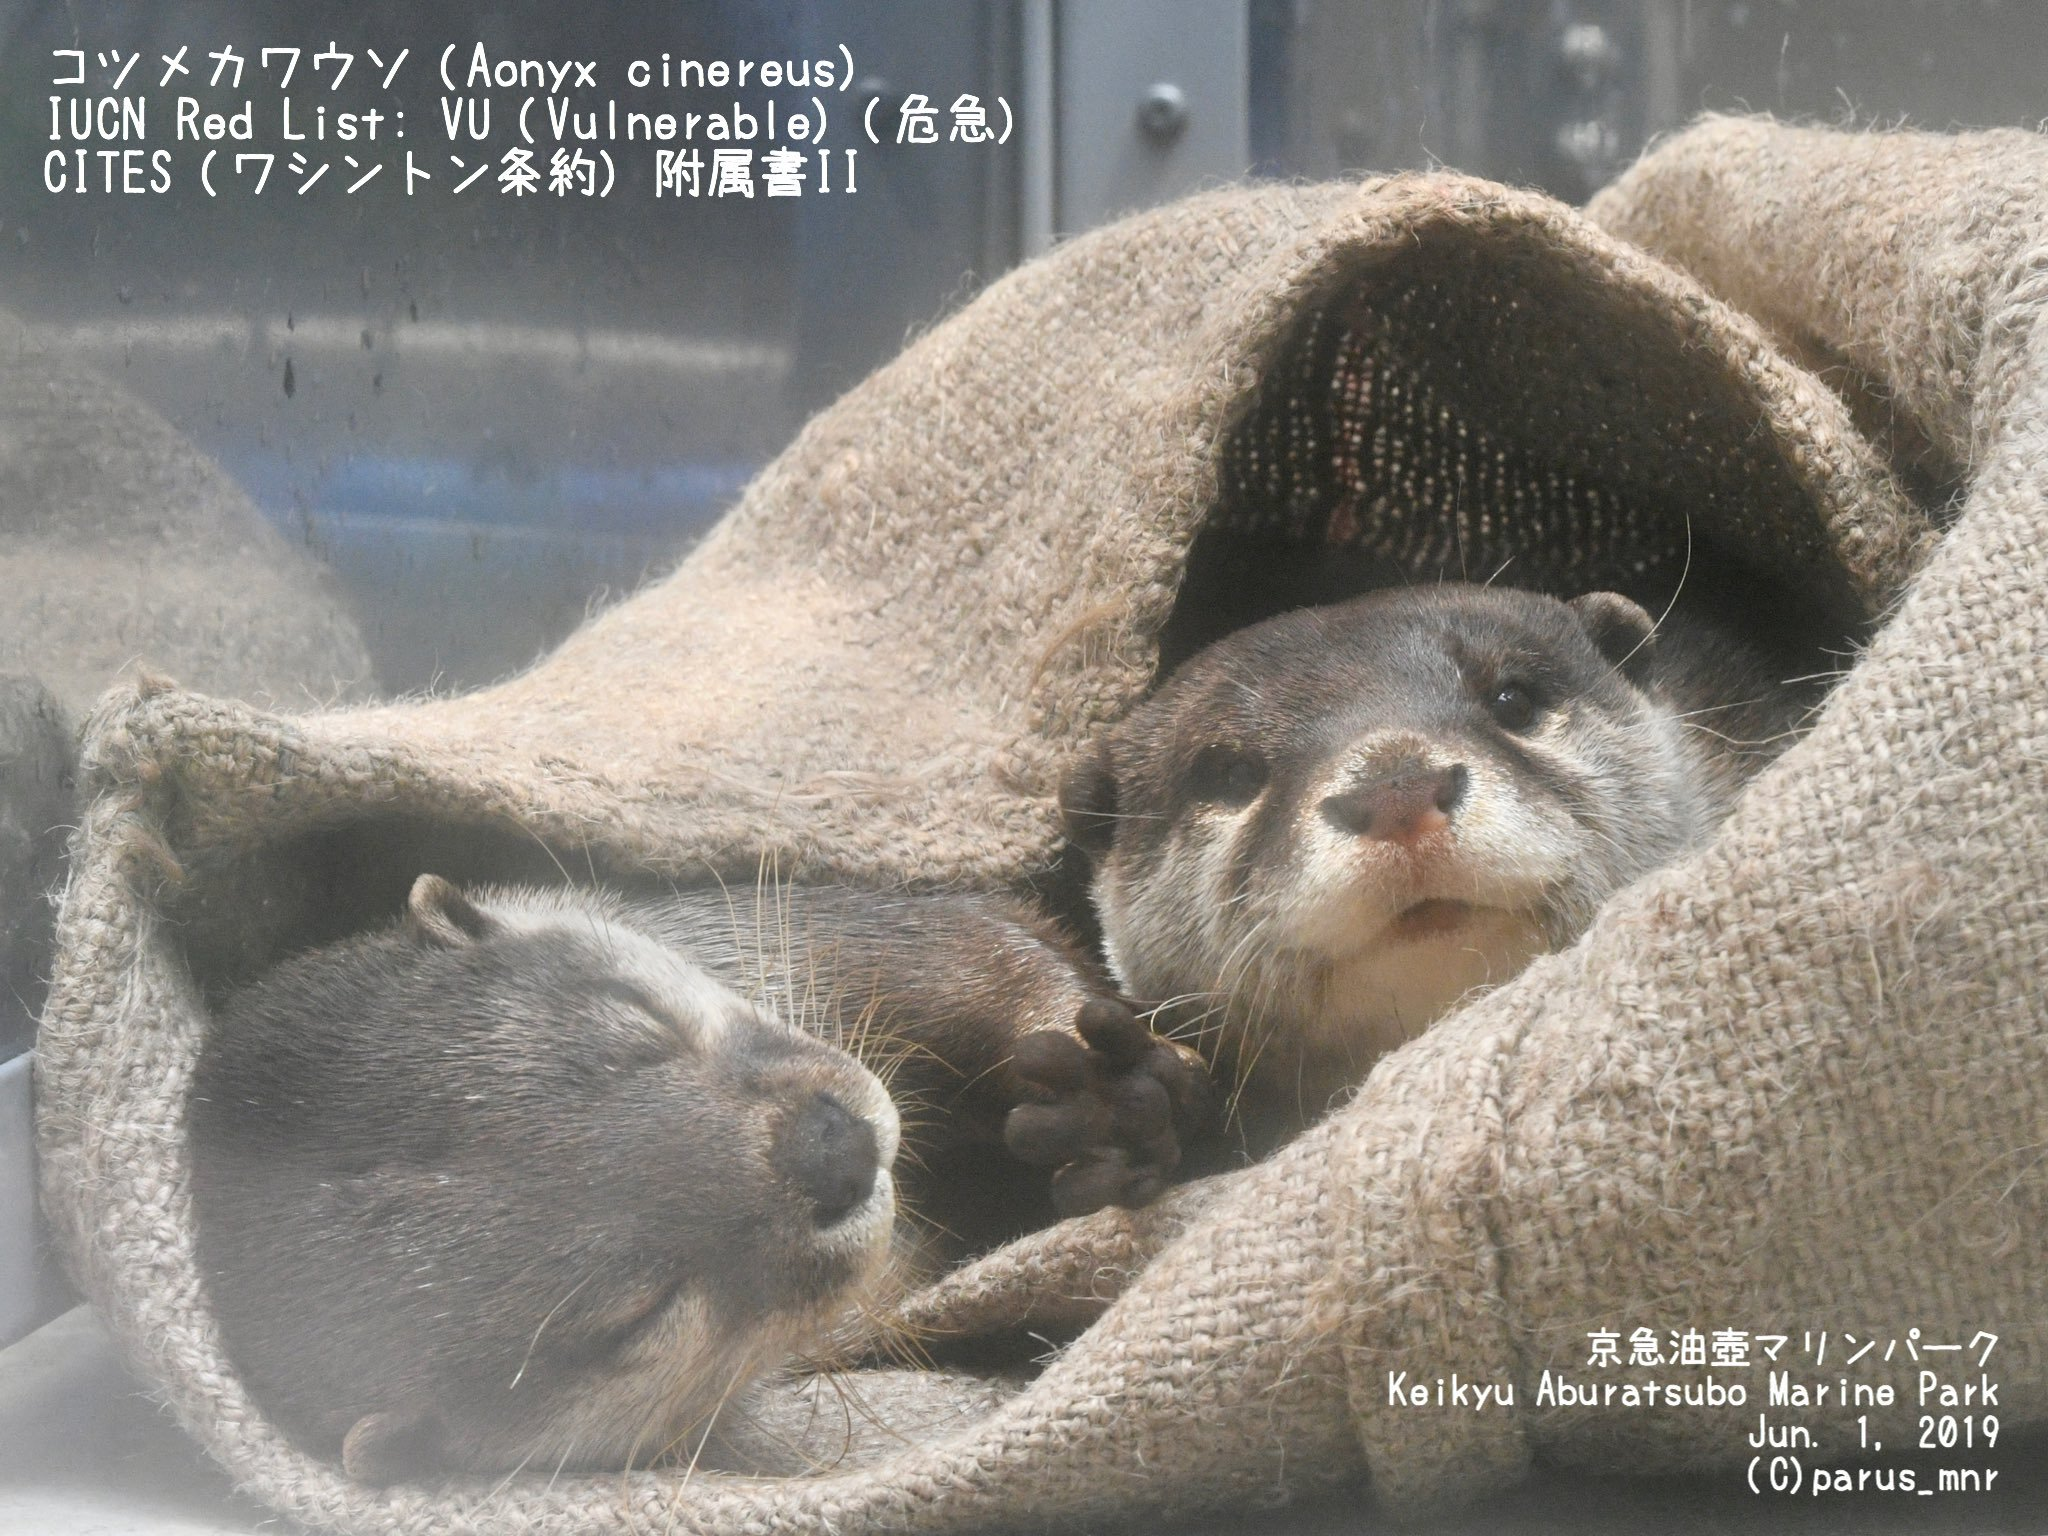 I'd Cuddle in Burlap If It Meant I Could Cuddle with an Otter